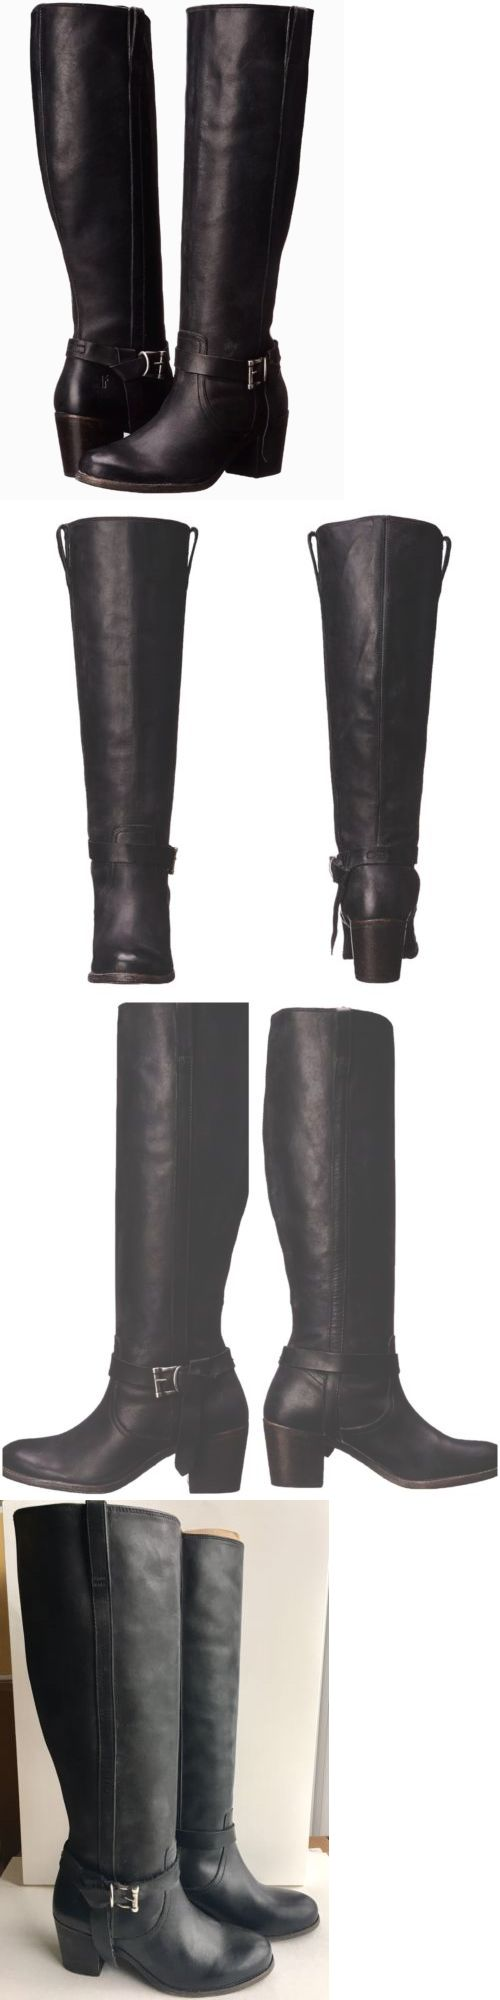 Women Boots: Frye Womens Malorie Knotted Tall Riding Boots, Size 6.5M Black BUY IT NOW ONLY: $130.0